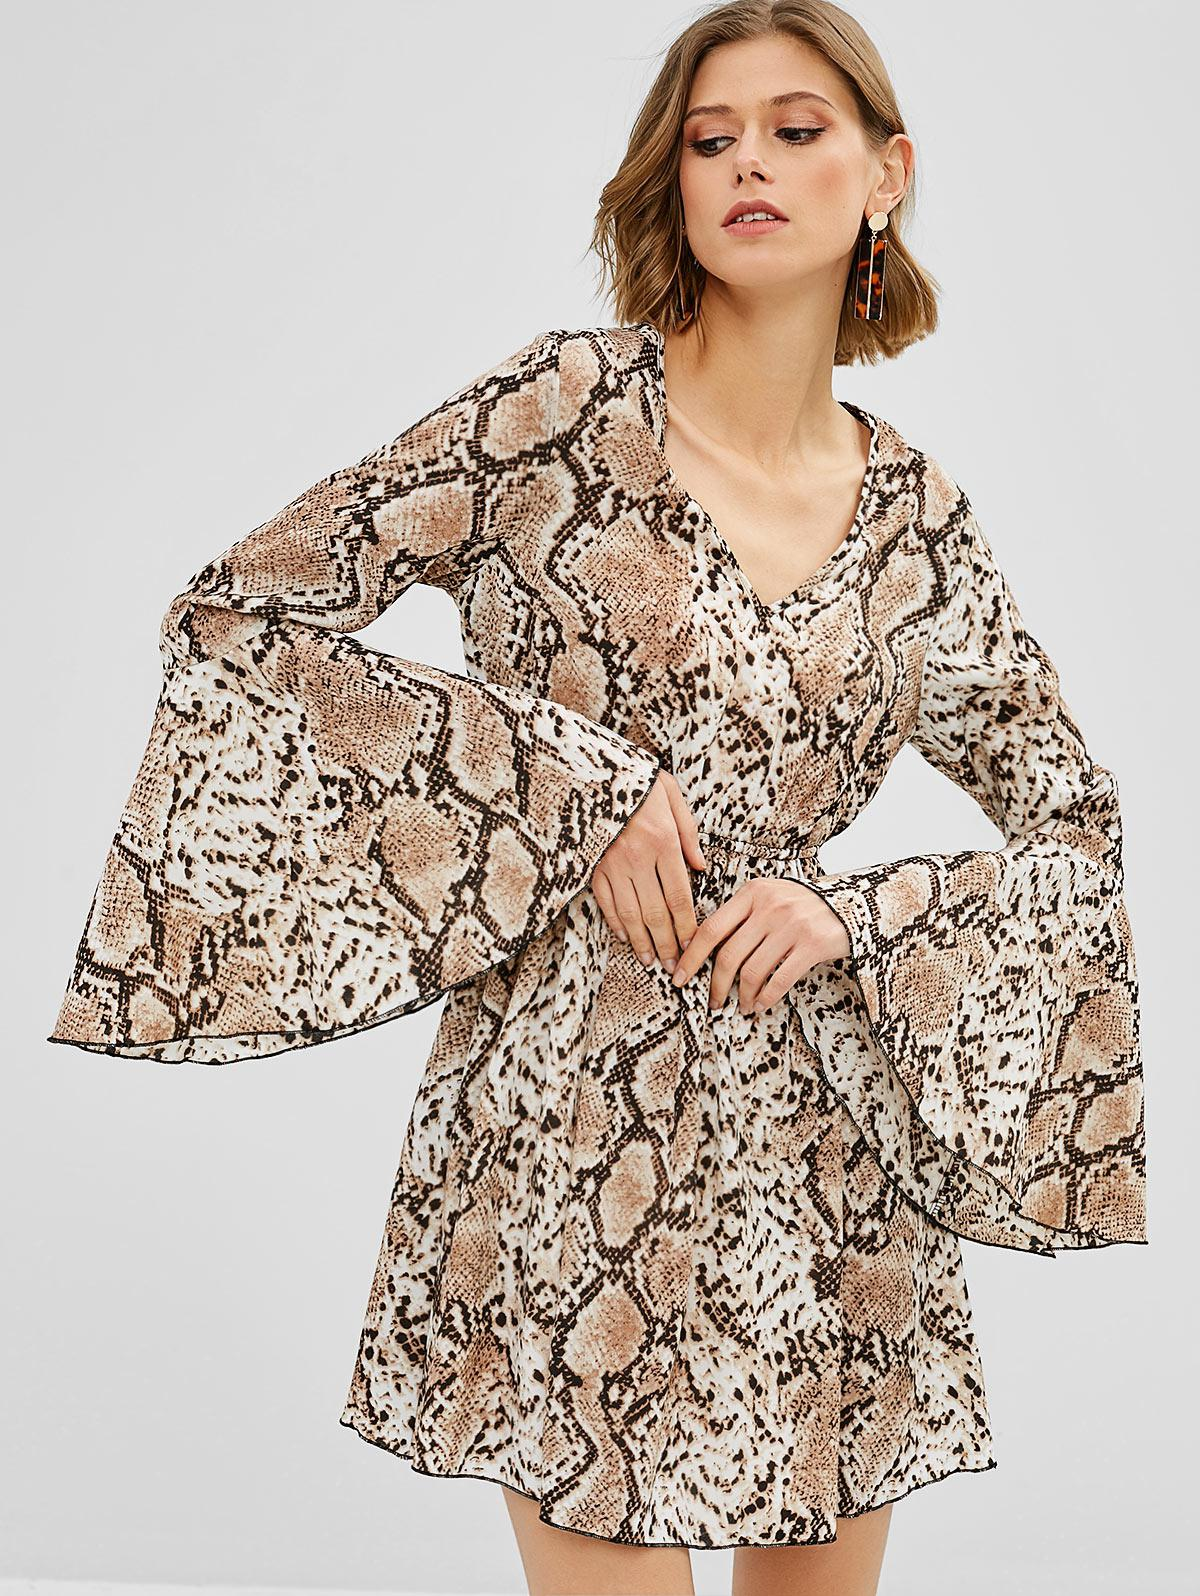 ZAFUL Flare Sleeve Snake Print Dress, Multi